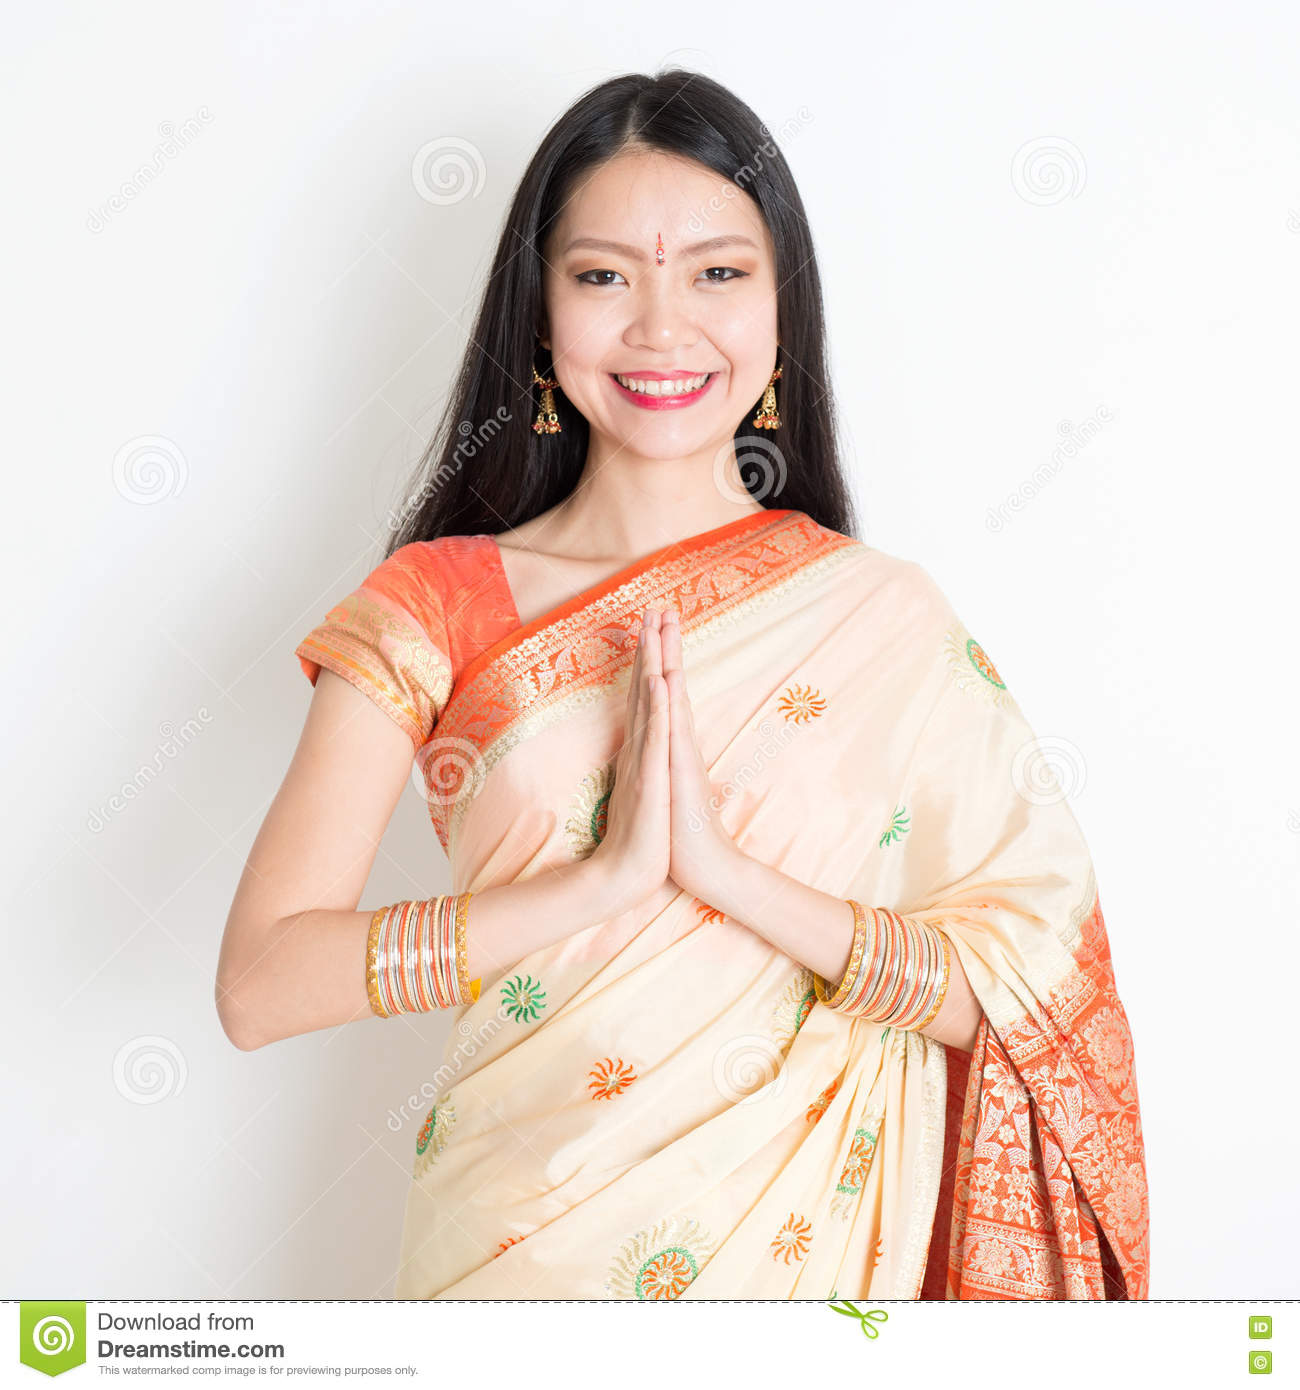 c05ada179b Portrait of mixed race Indian Chinese girl with traditional sari dress in  greeting gesture, standing on plain background.